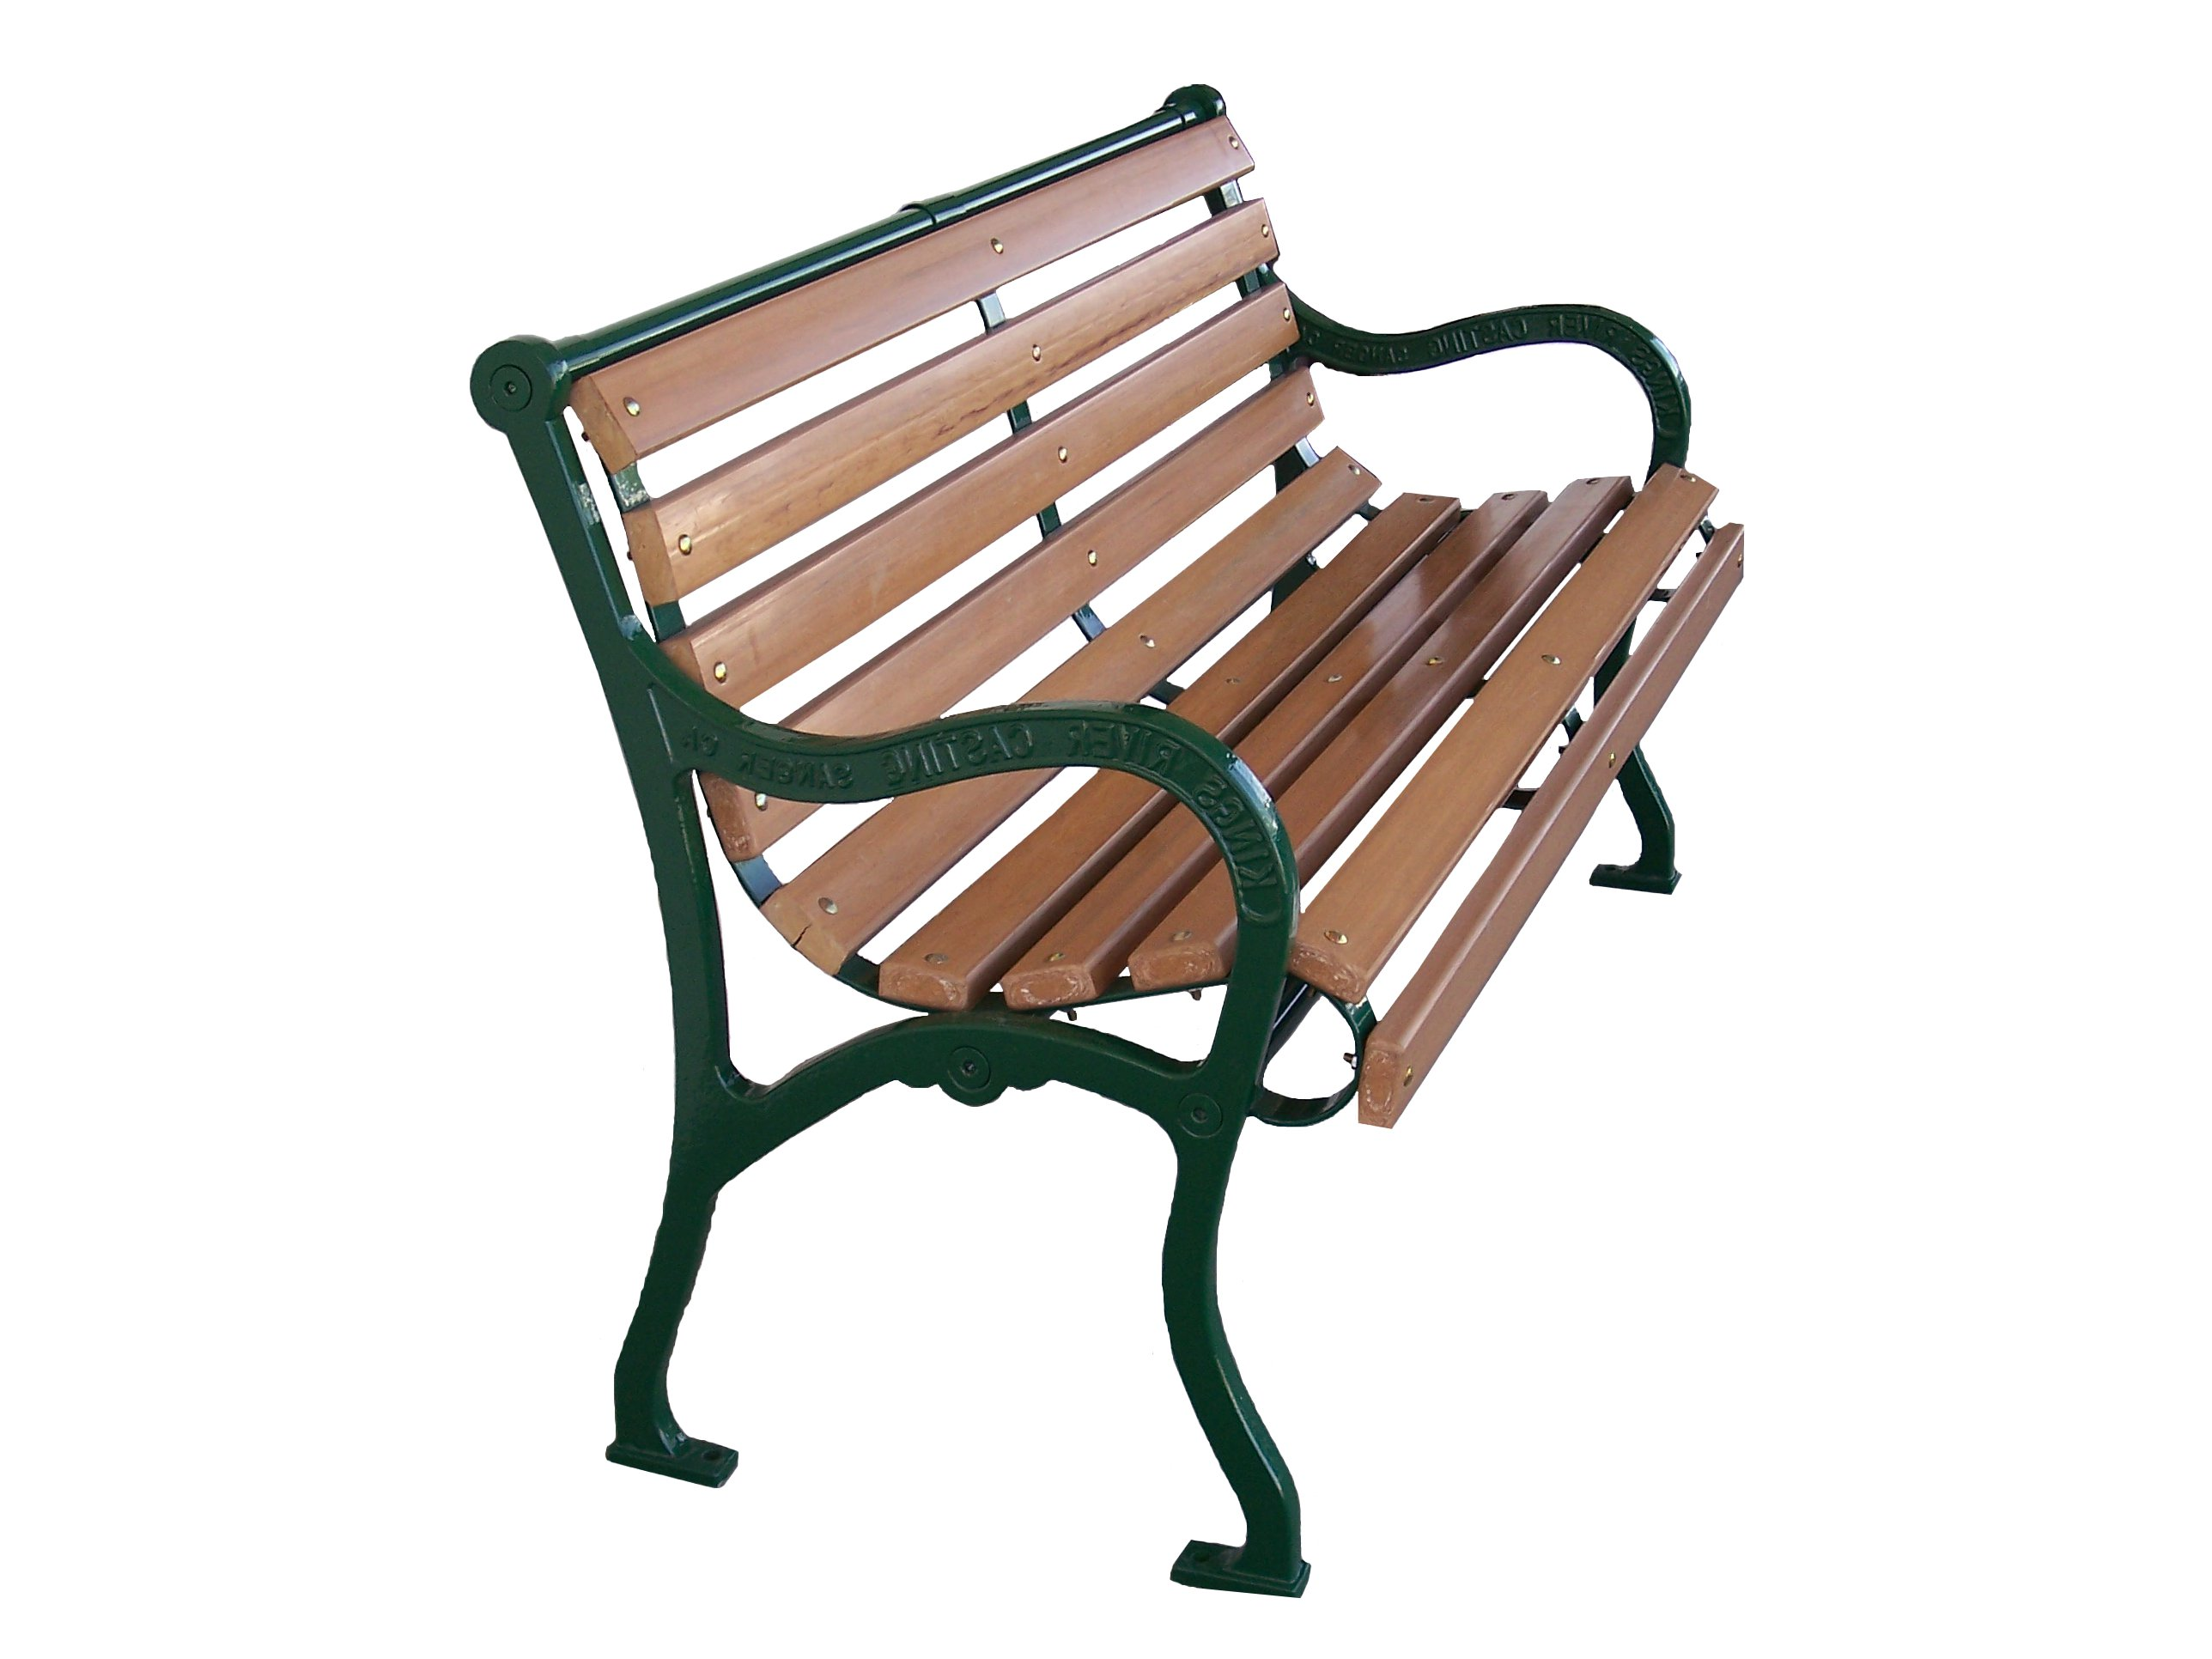 Marvelous photograph of Classic White Oak Park Bench with #884444 color and 2576x1932 pixels